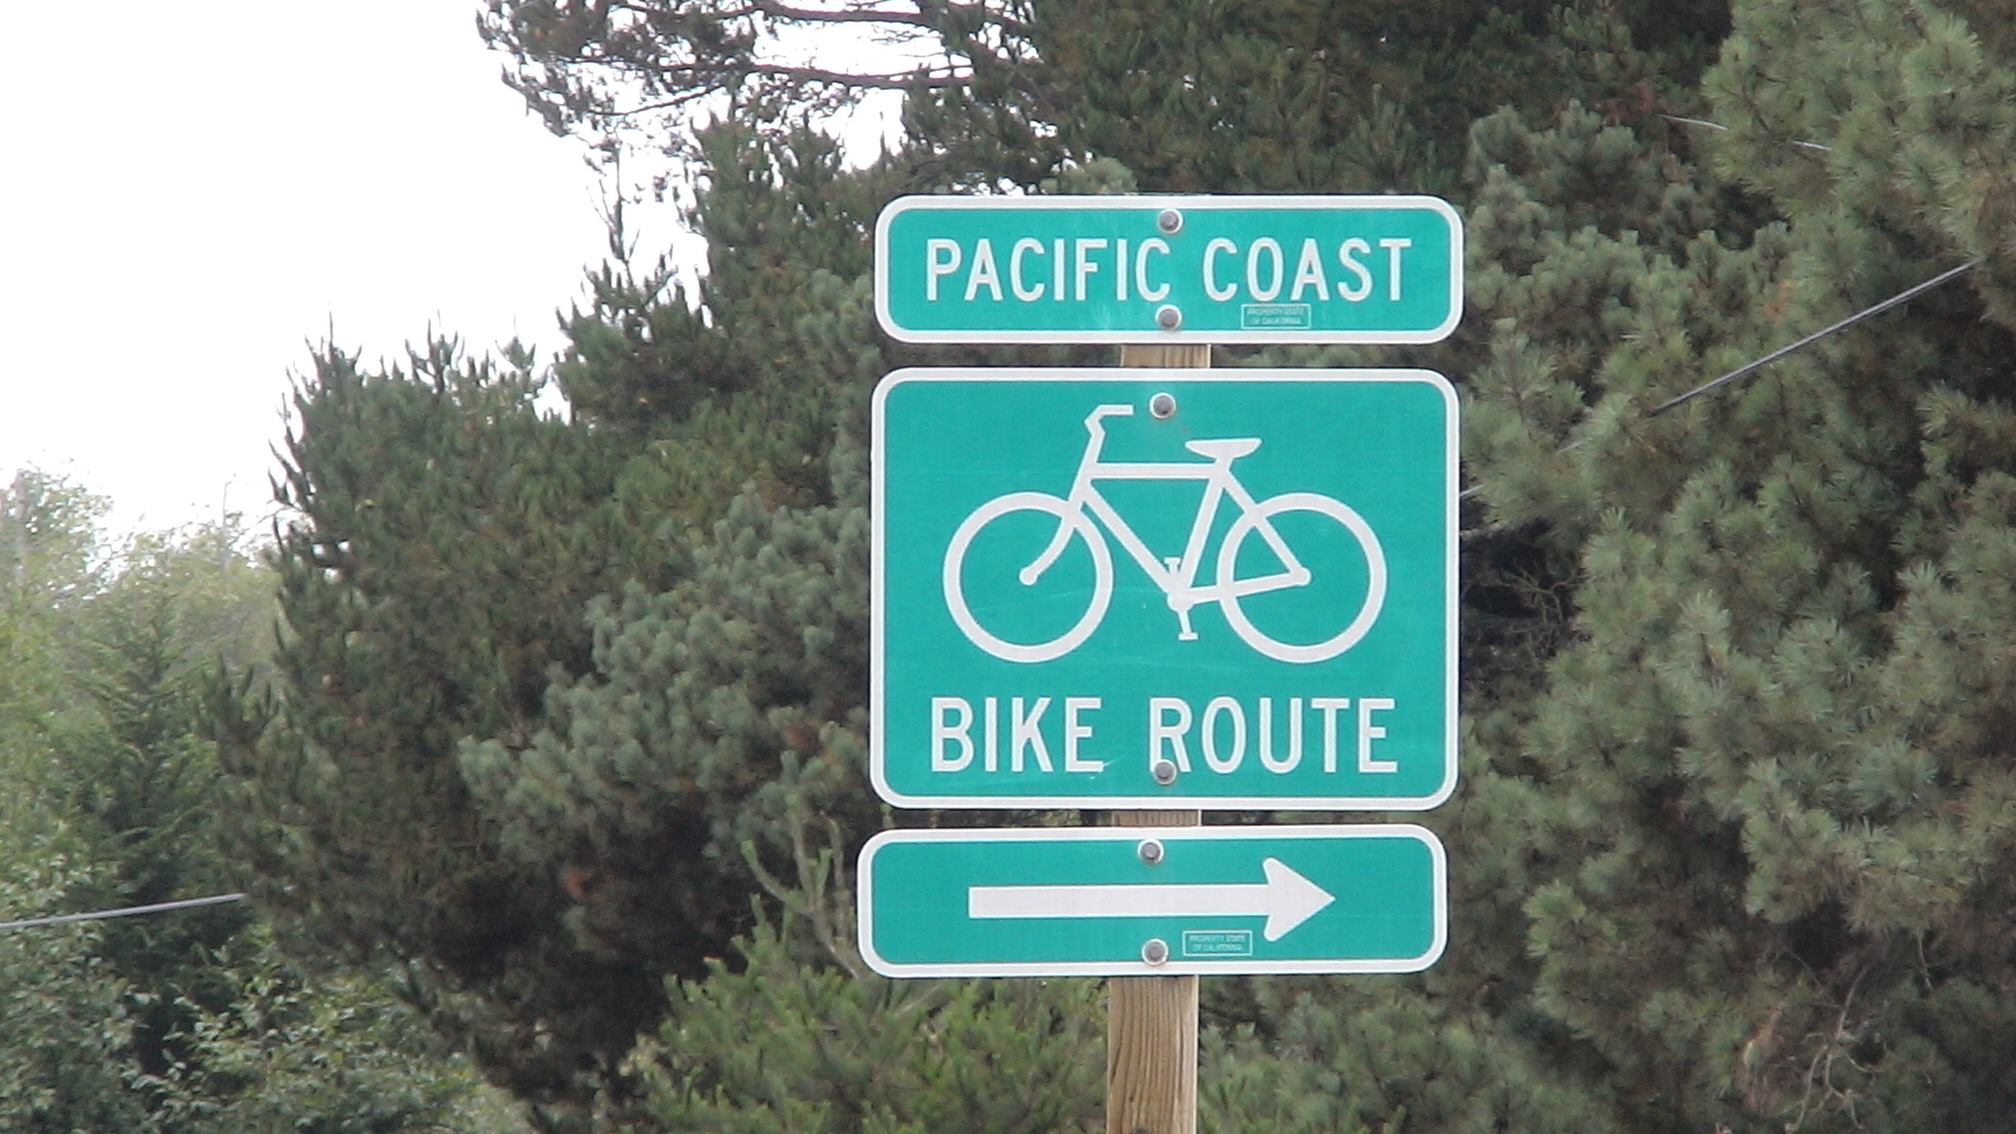 Bicycling For Weight Loss >> Biking the Pacific Coast - I Love Bicycling